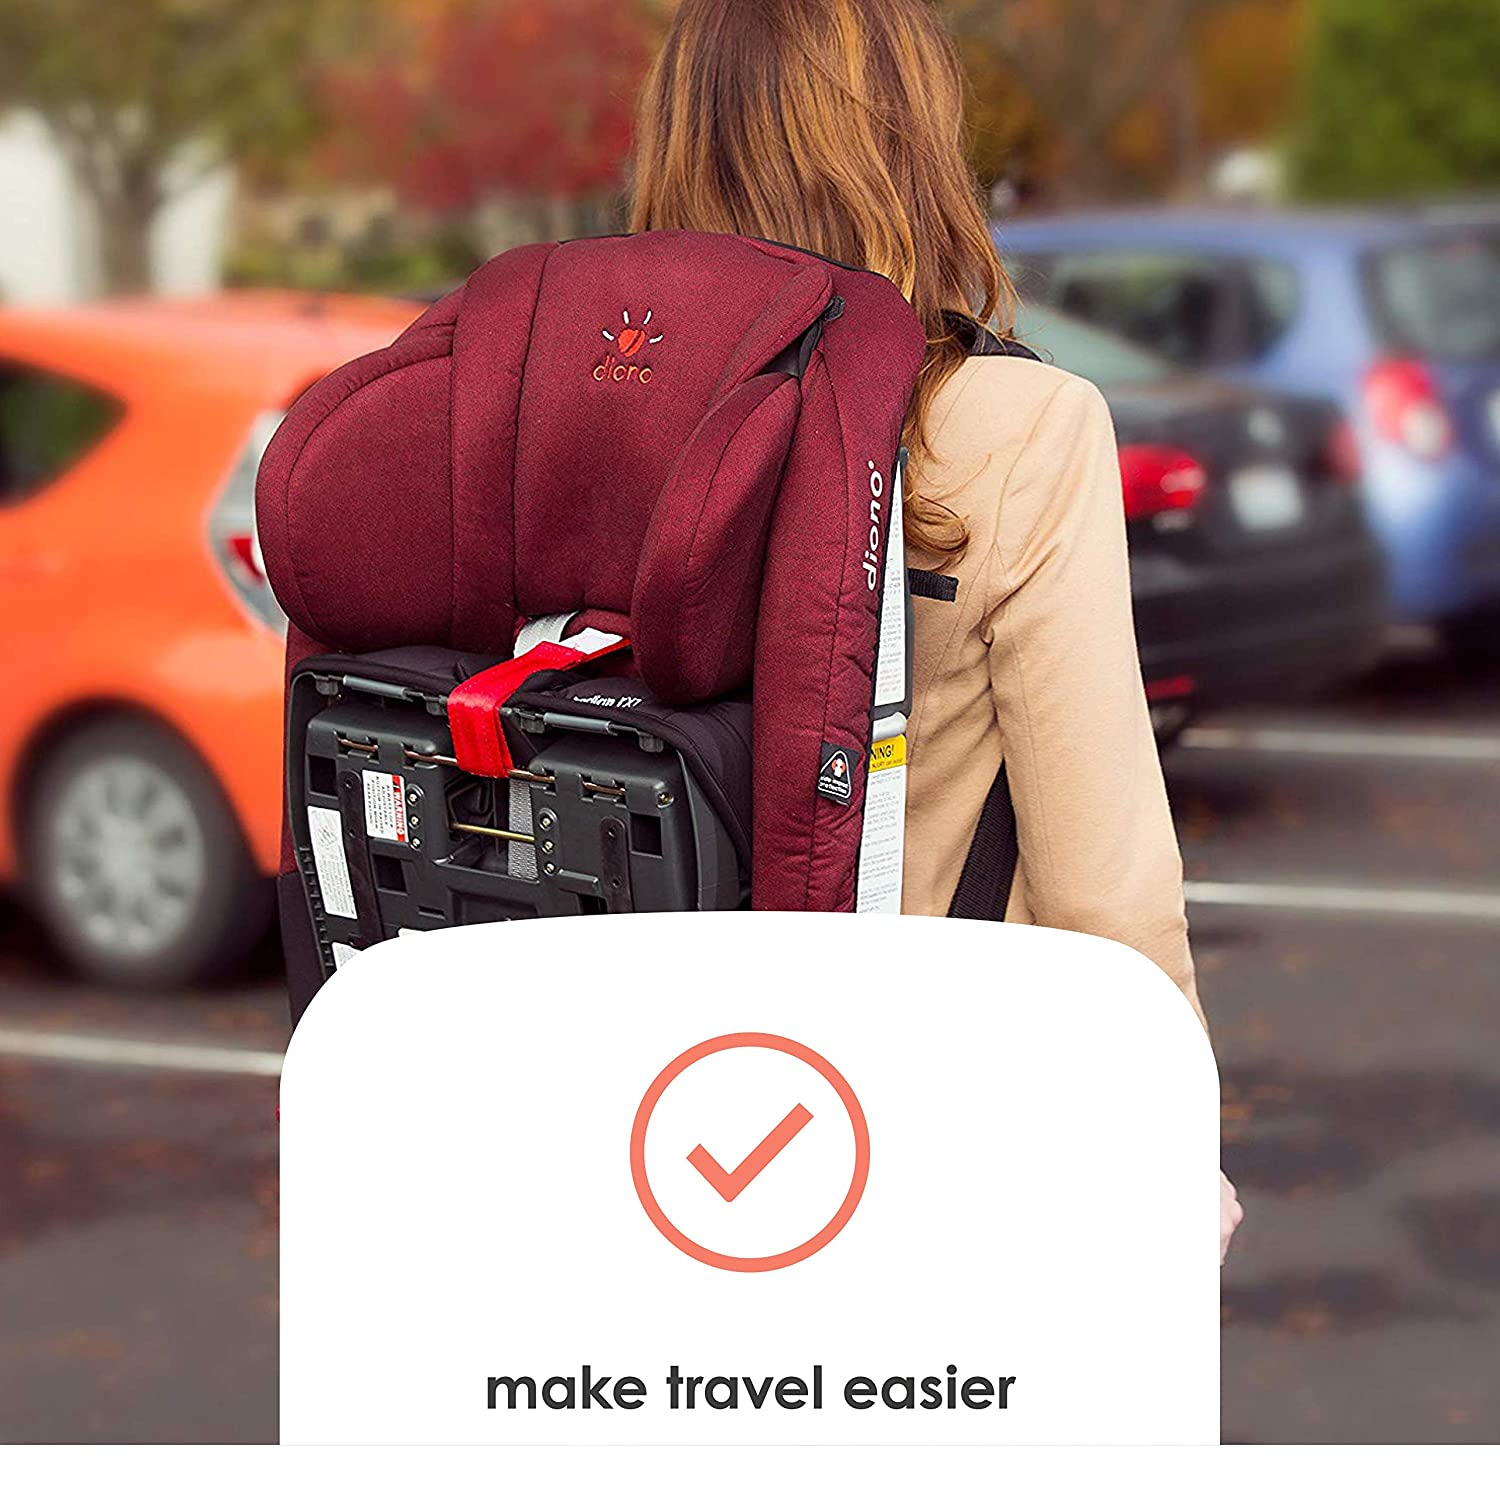 Black Easy to Attach Durable Strong Diono Radian Carry Strap Adjustable Straps with Comfort Pads to Transport Diono Convertible Car Seats